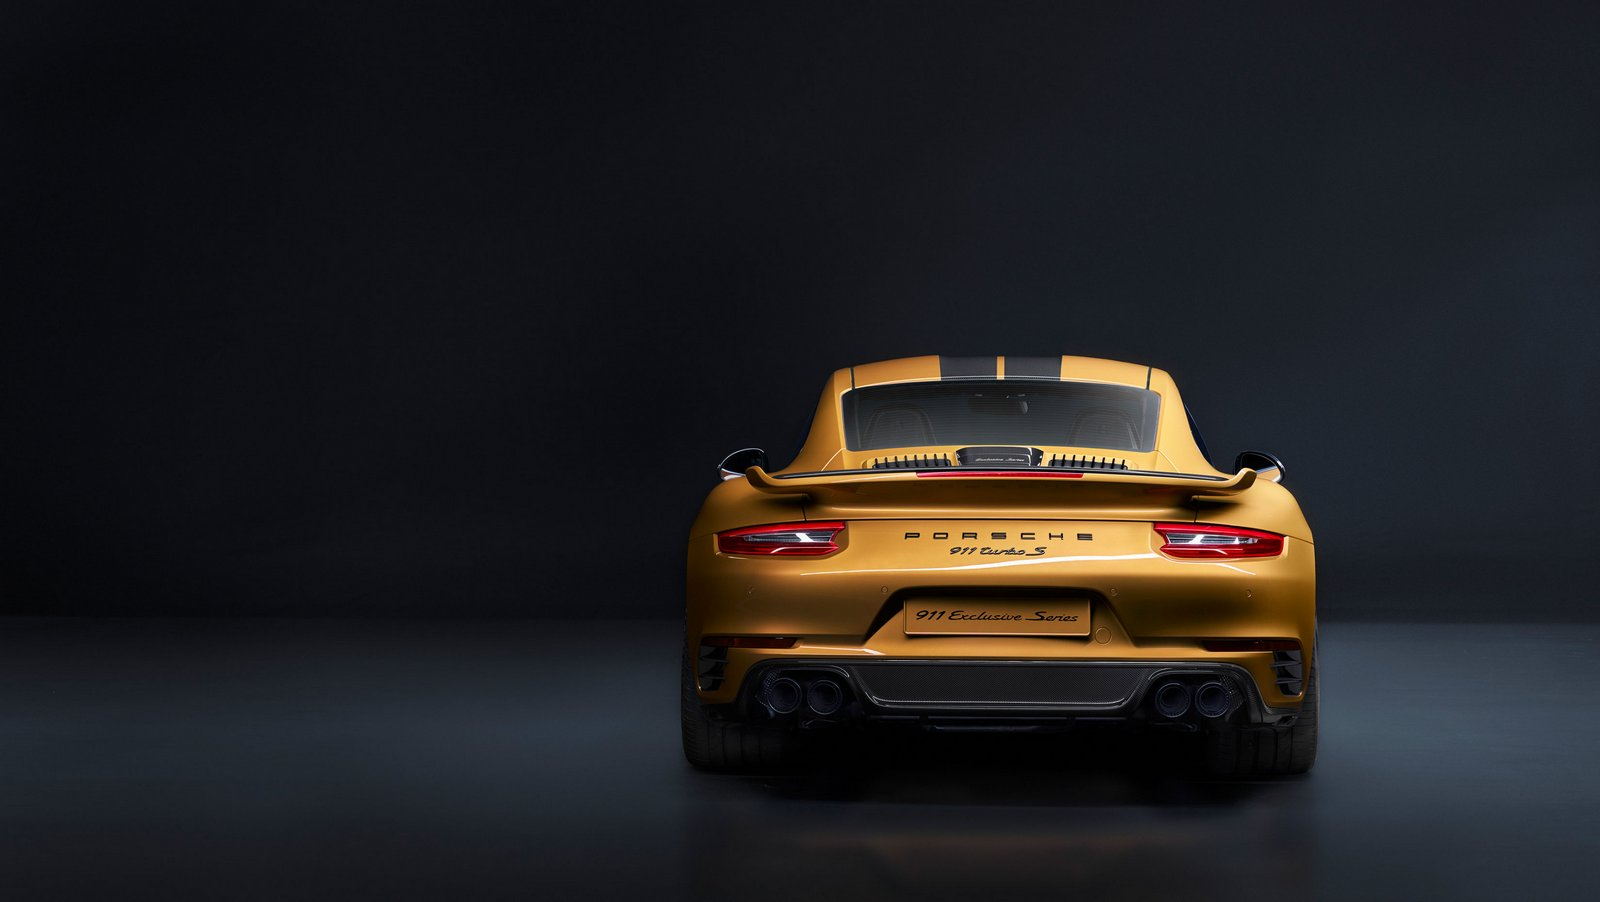 Porsche 911 Turbo S Exclusive Series : 607ch, 500 ex.